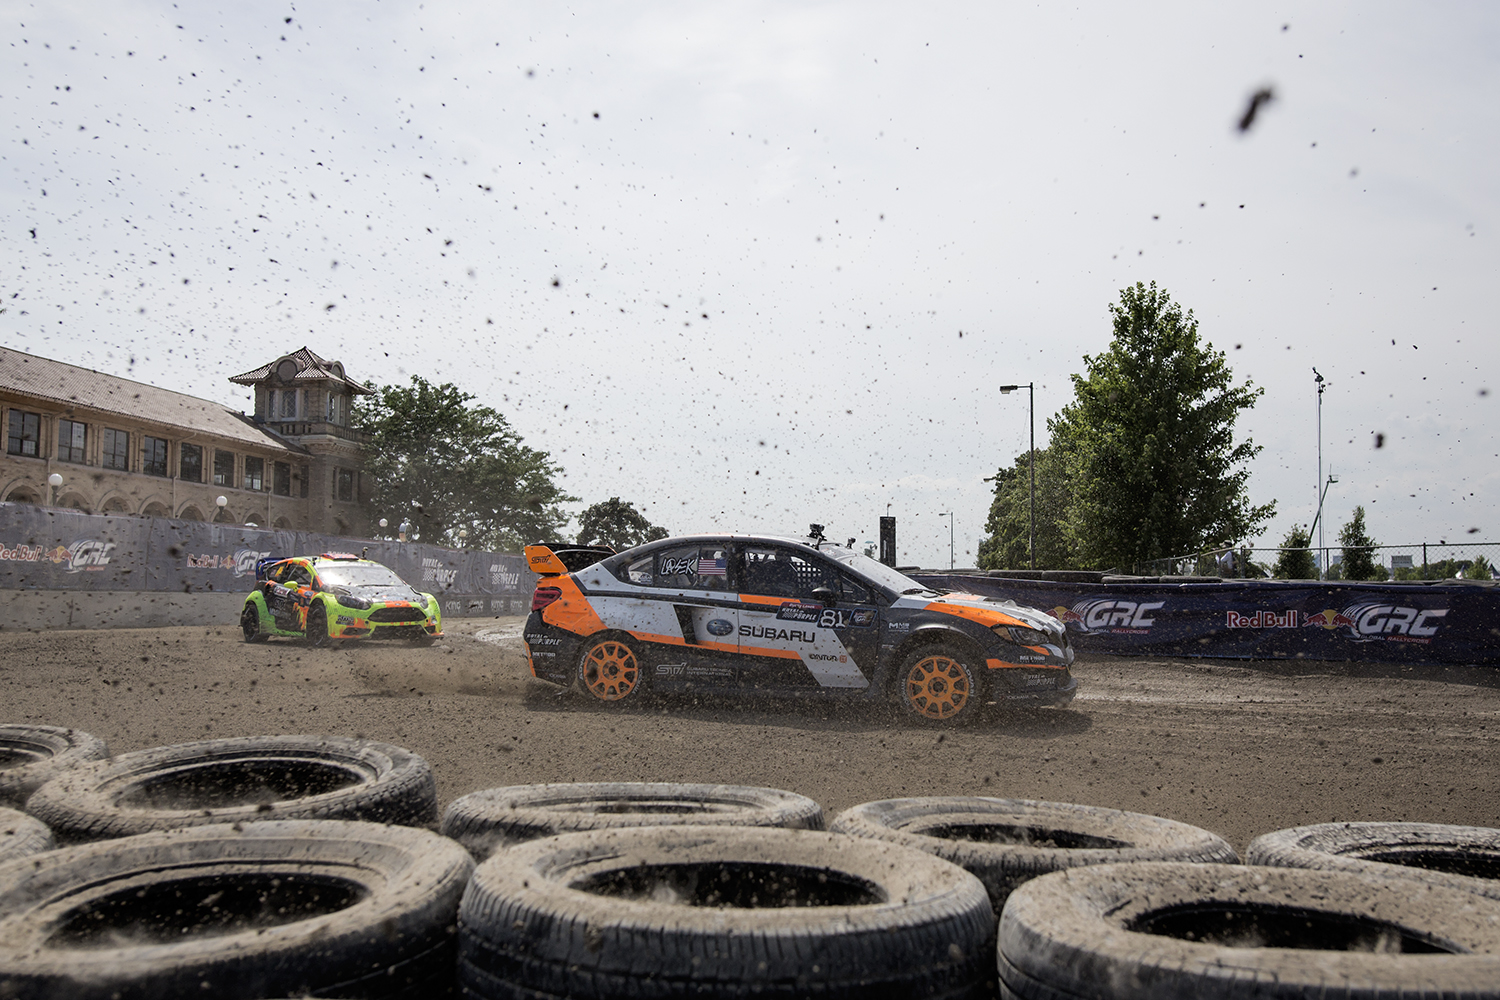 Austin Dyne in the #14 car chases after Bucky Lasek, #81,  during the RedBull Global Rallycross on Sunday, Juy 26, 2015 on Belle Isle in Detroit. Tim Galloway/Special for DFP